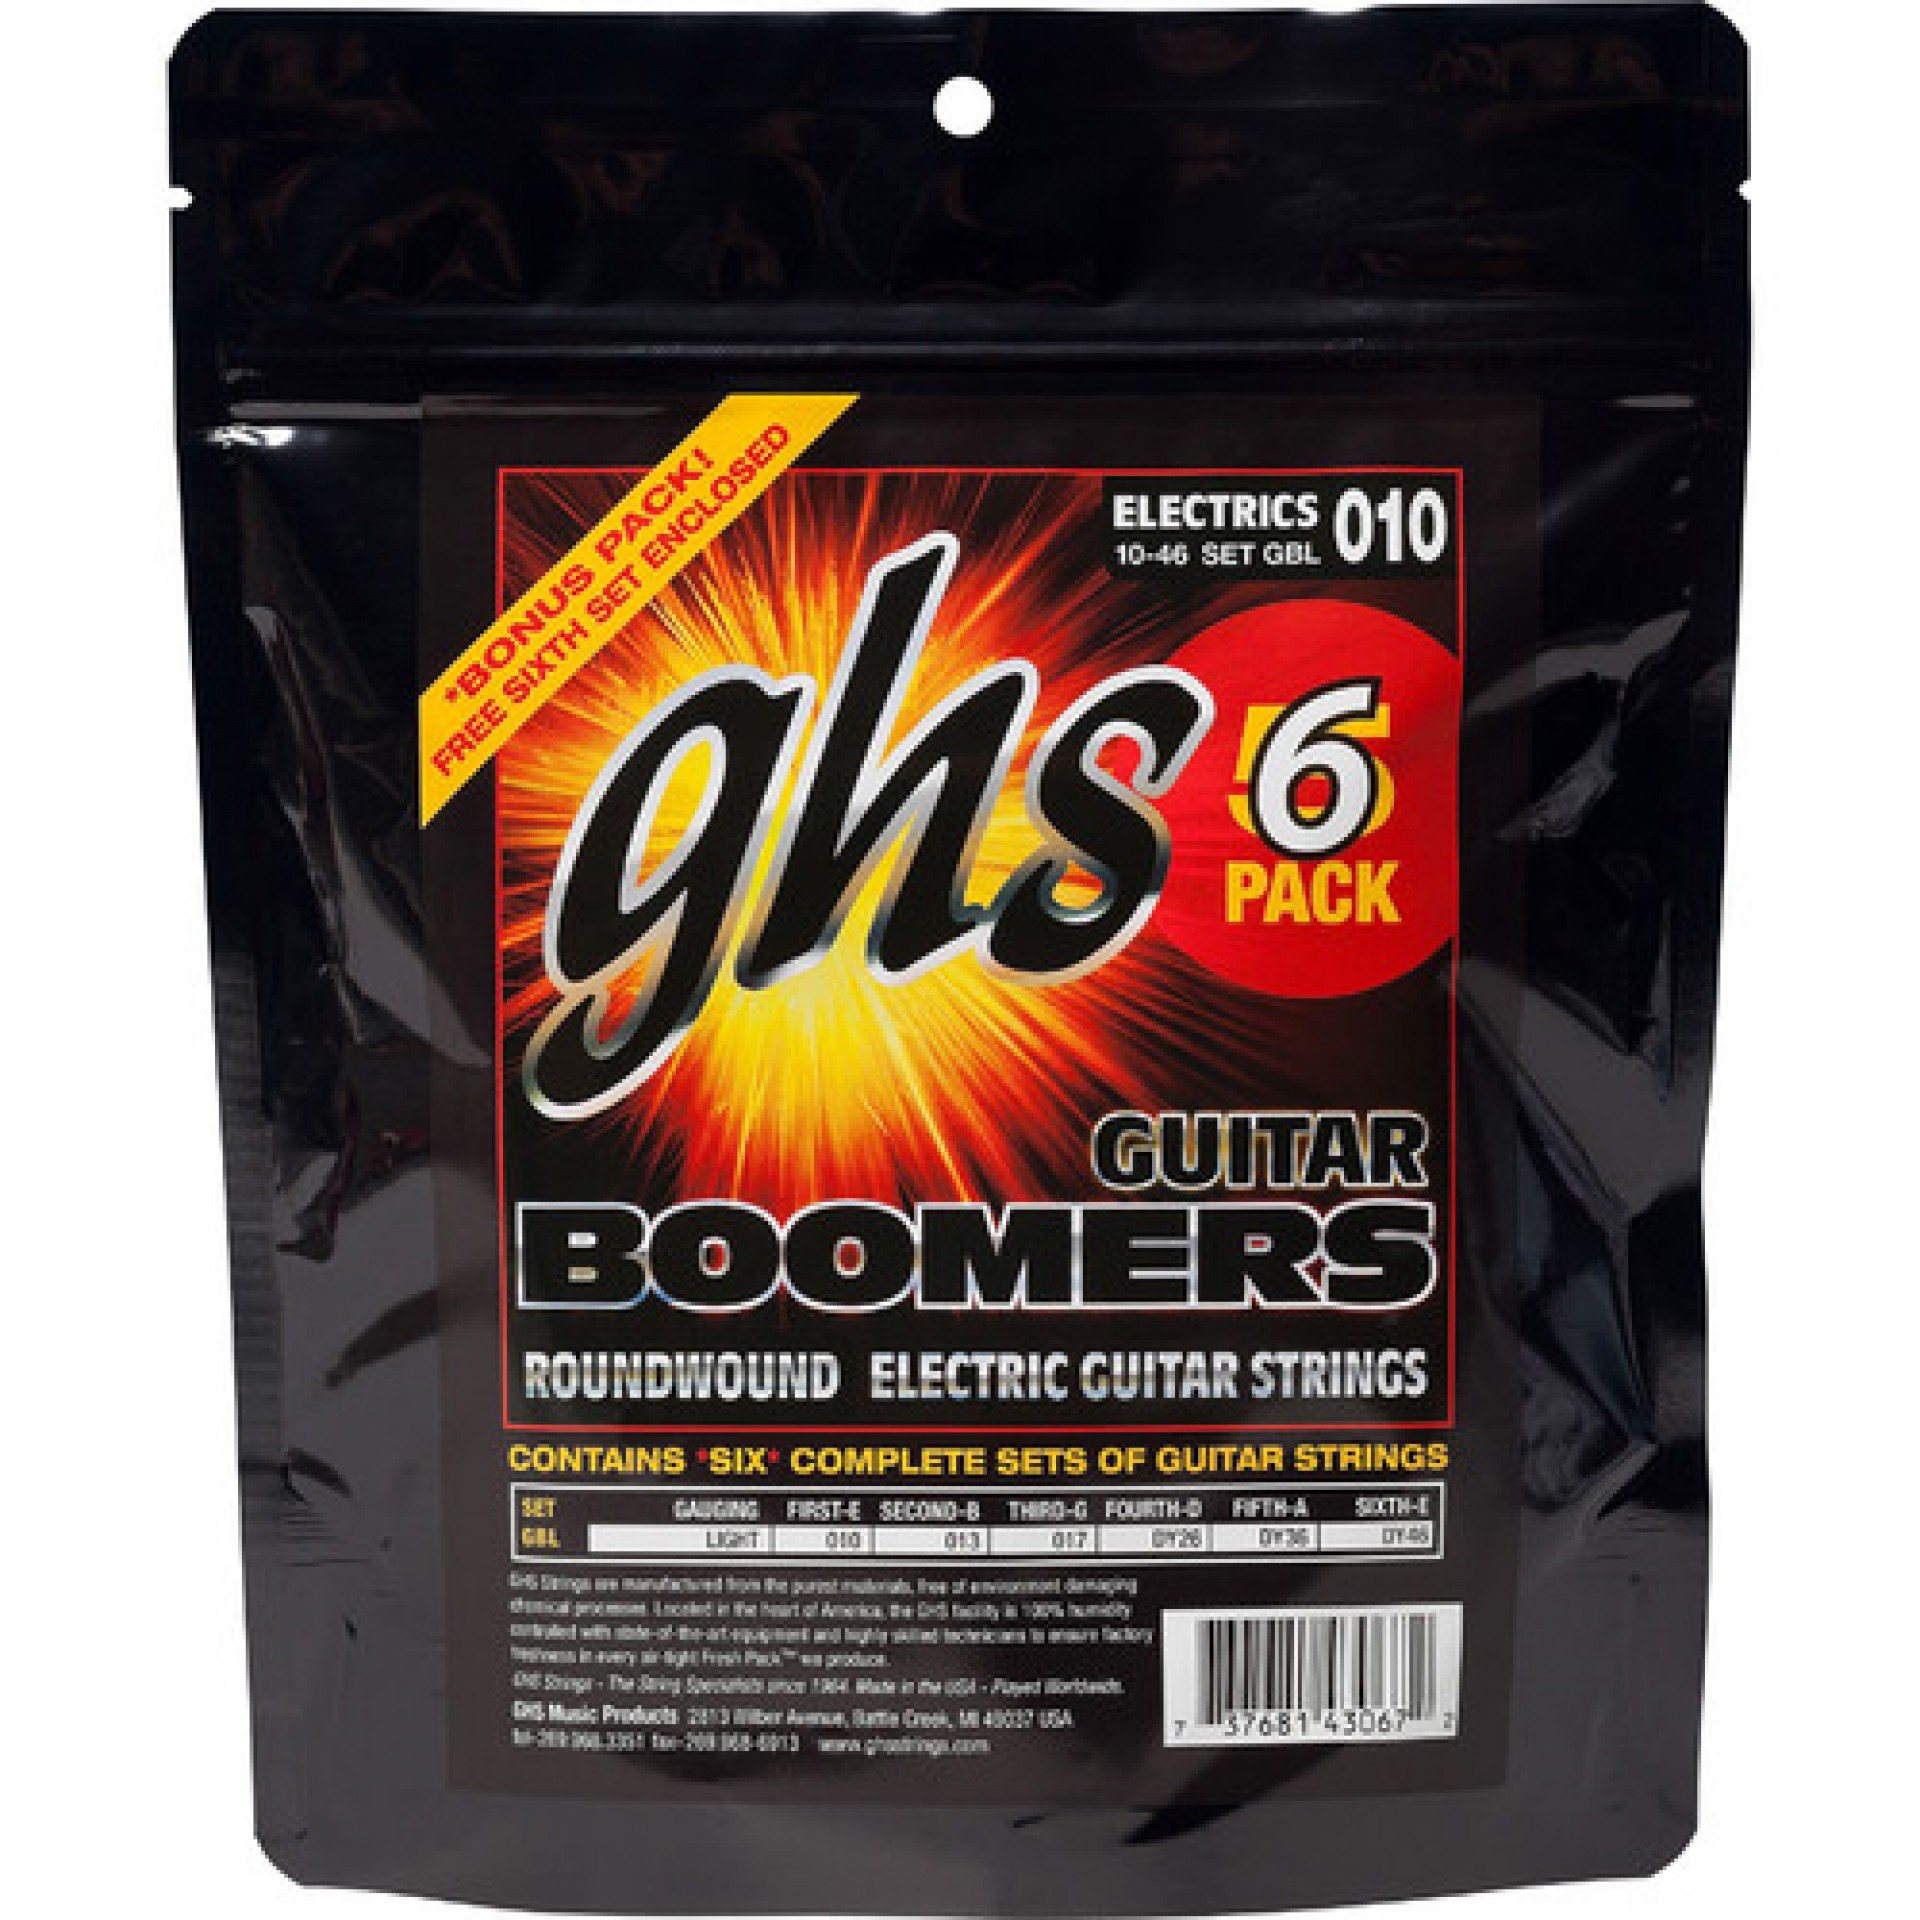 GHS GBL-5 Light Boomers Multi-Pack Roundwound Electric Guitar Strings (6-String Set, 10 - 46, 6-Pack)